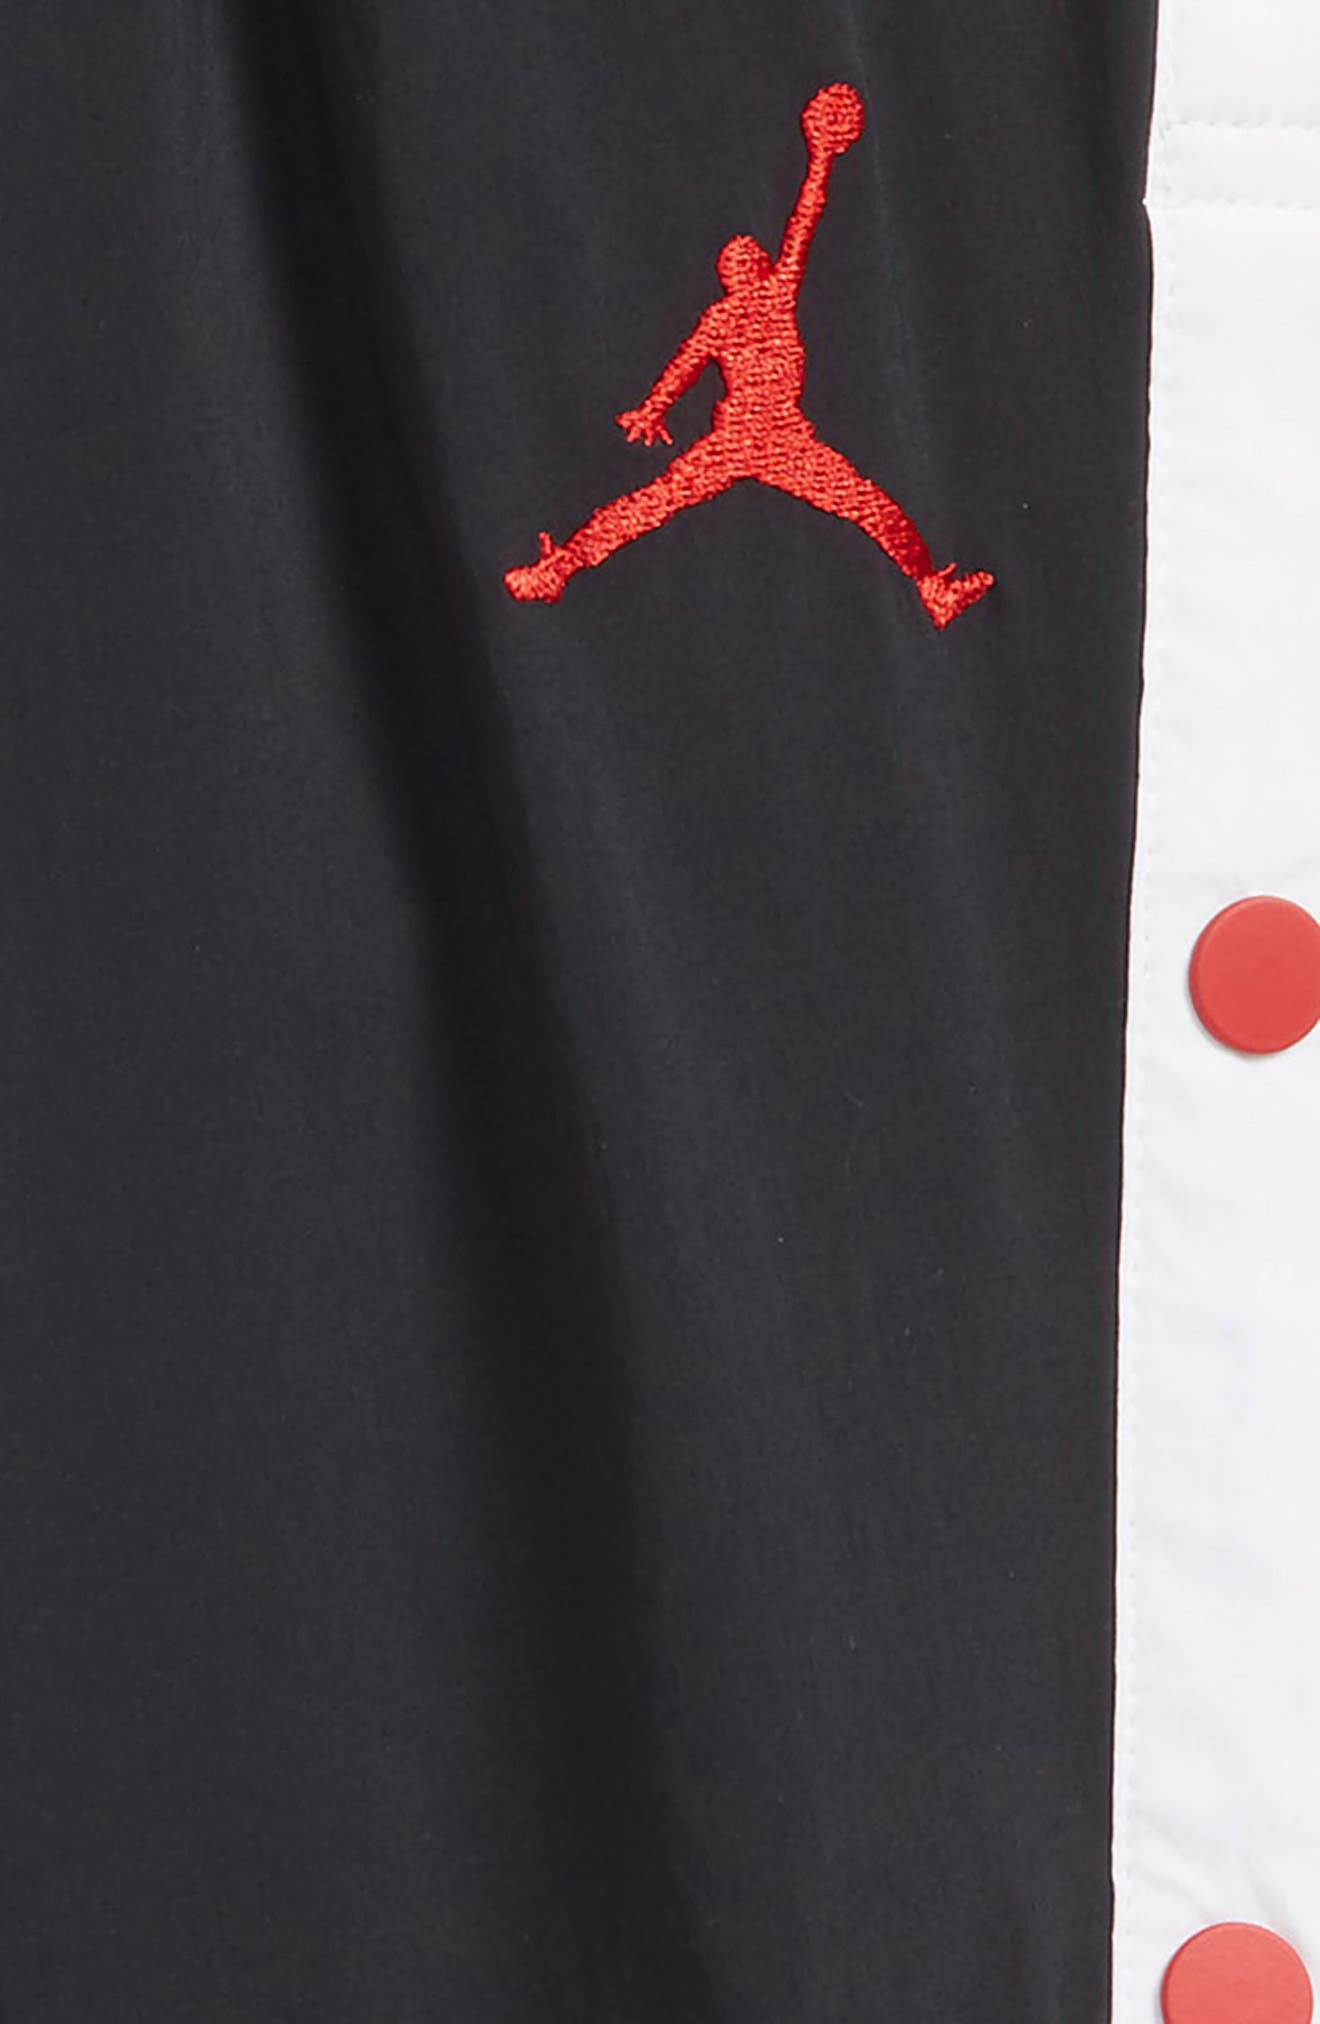 Jordan AJ '90s Snapaway Sweatpants,                             Alternate thumbnail 2, color,                             Black